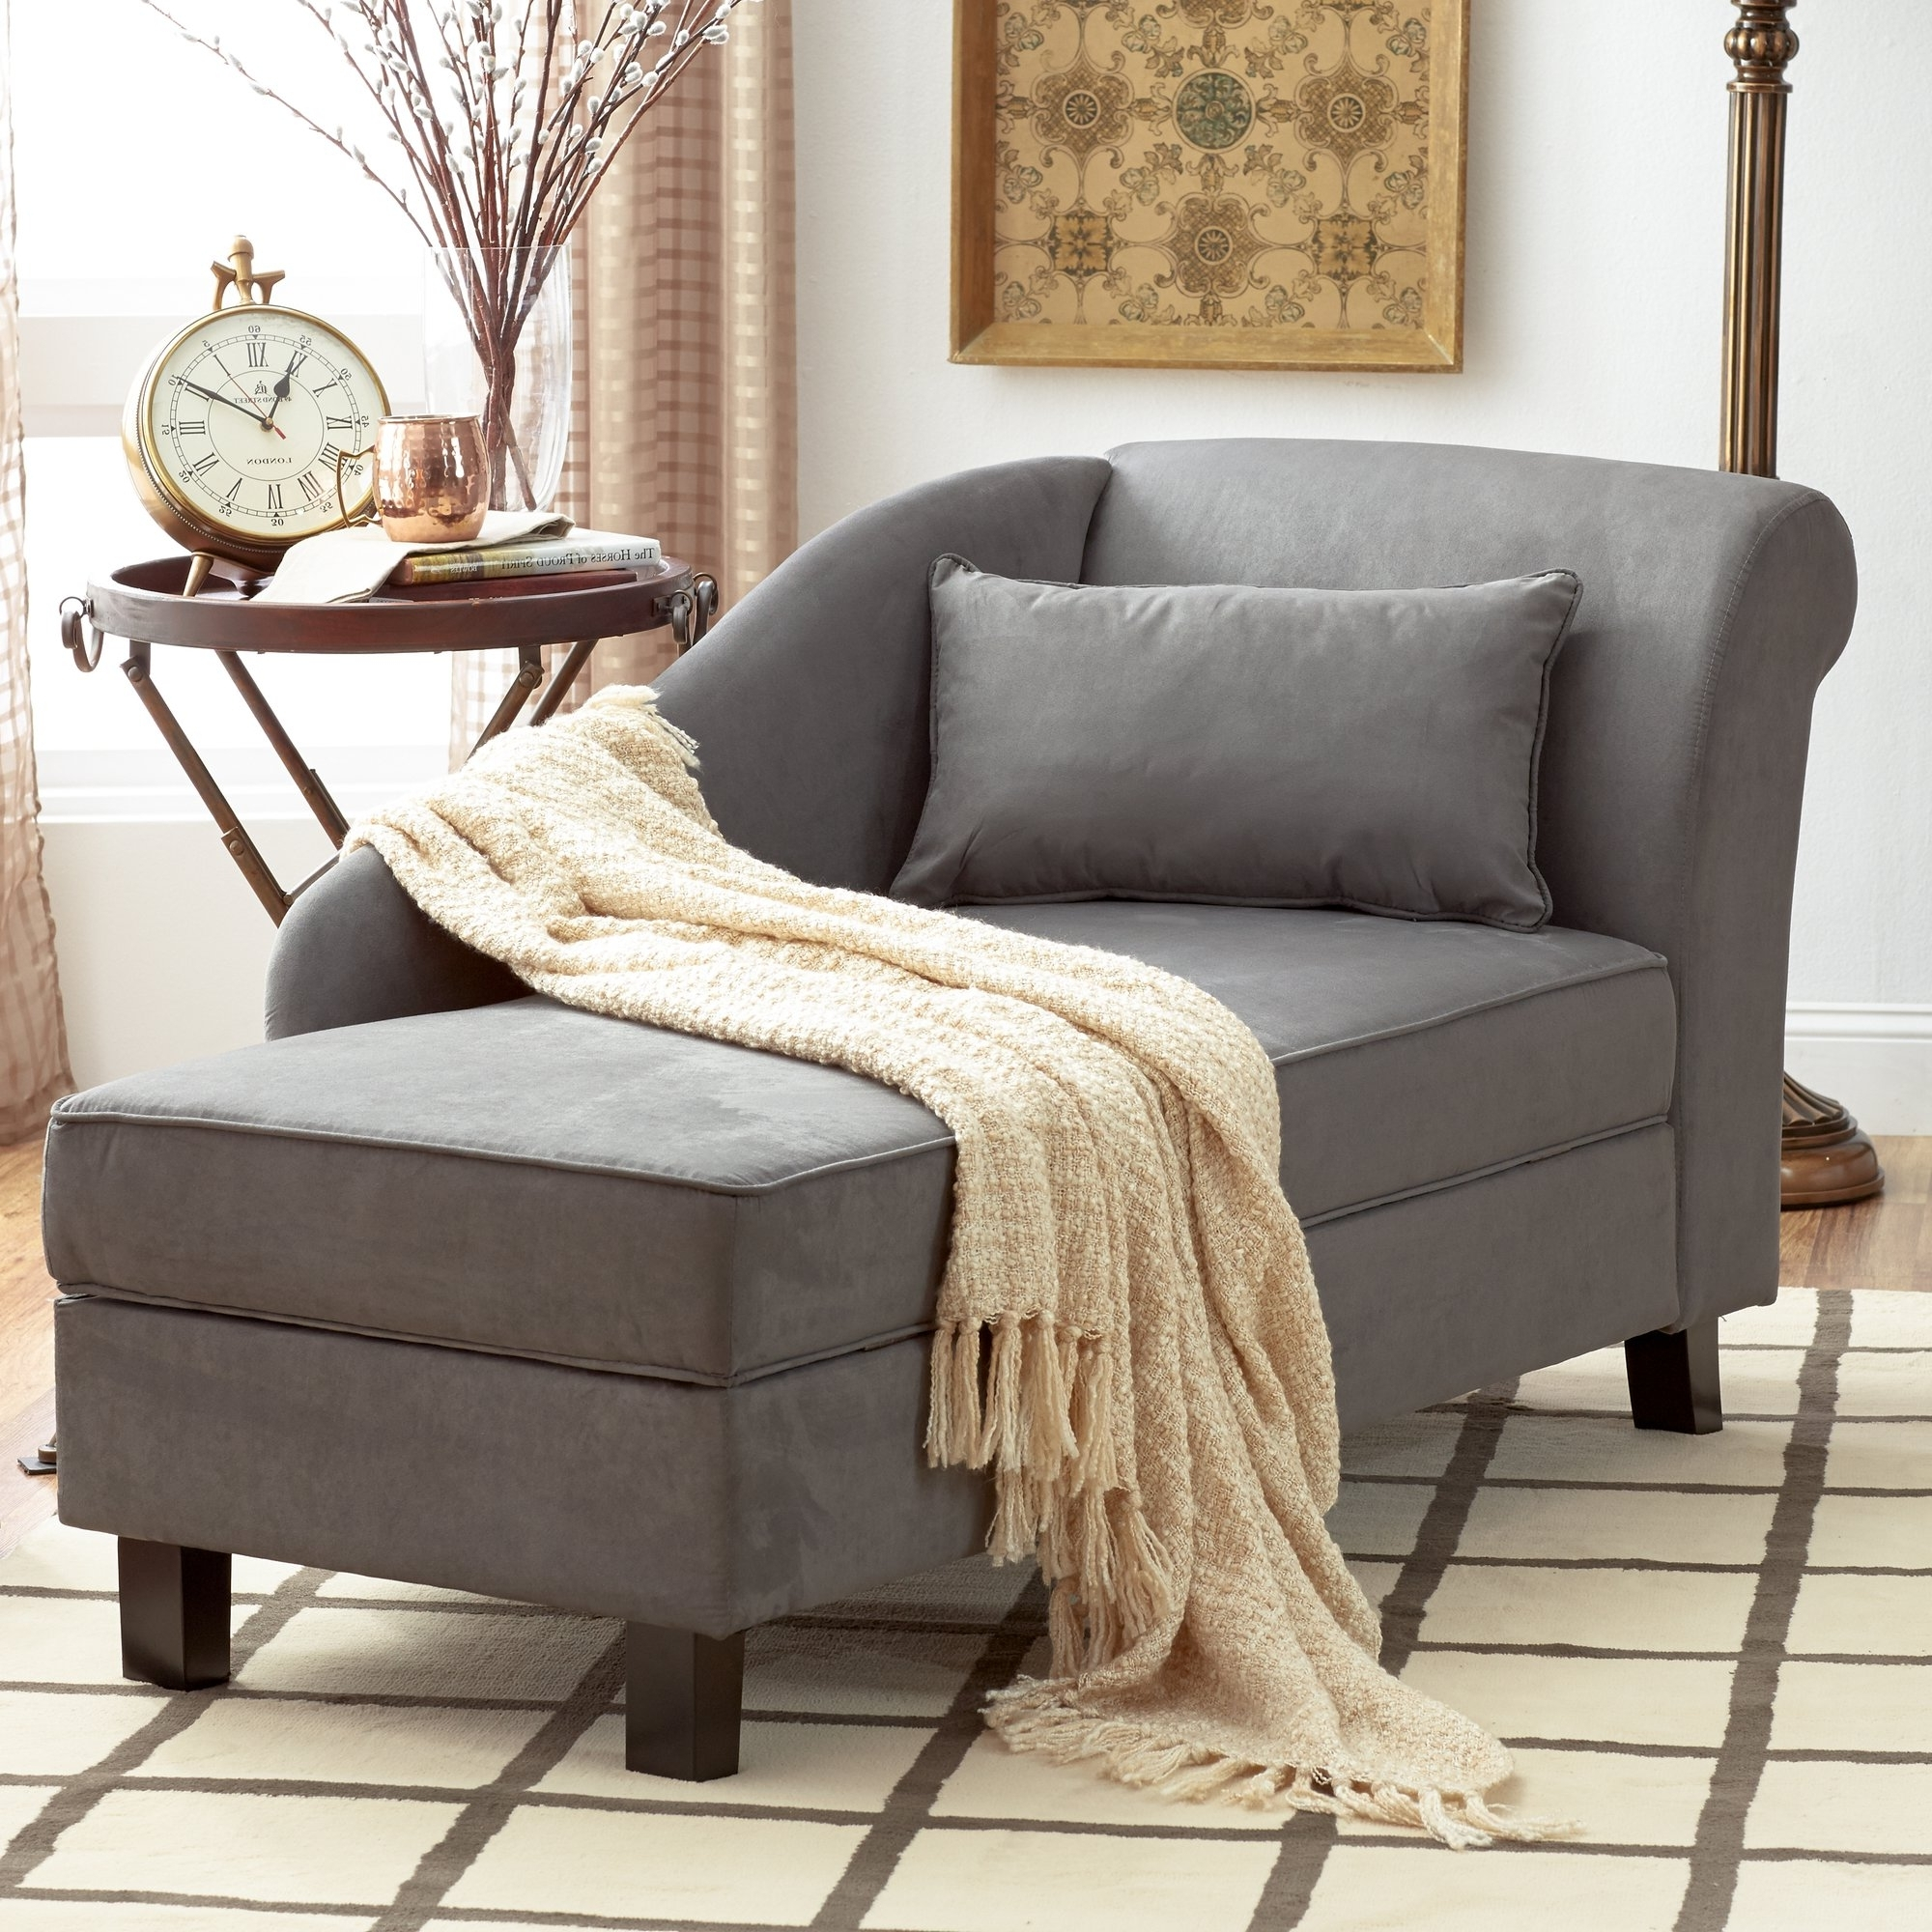 Current Microfiber Chaise Lounges With Uncategorized : Microfiber Chaise Lounge With Wonderful Elegant (View 4 of 15)